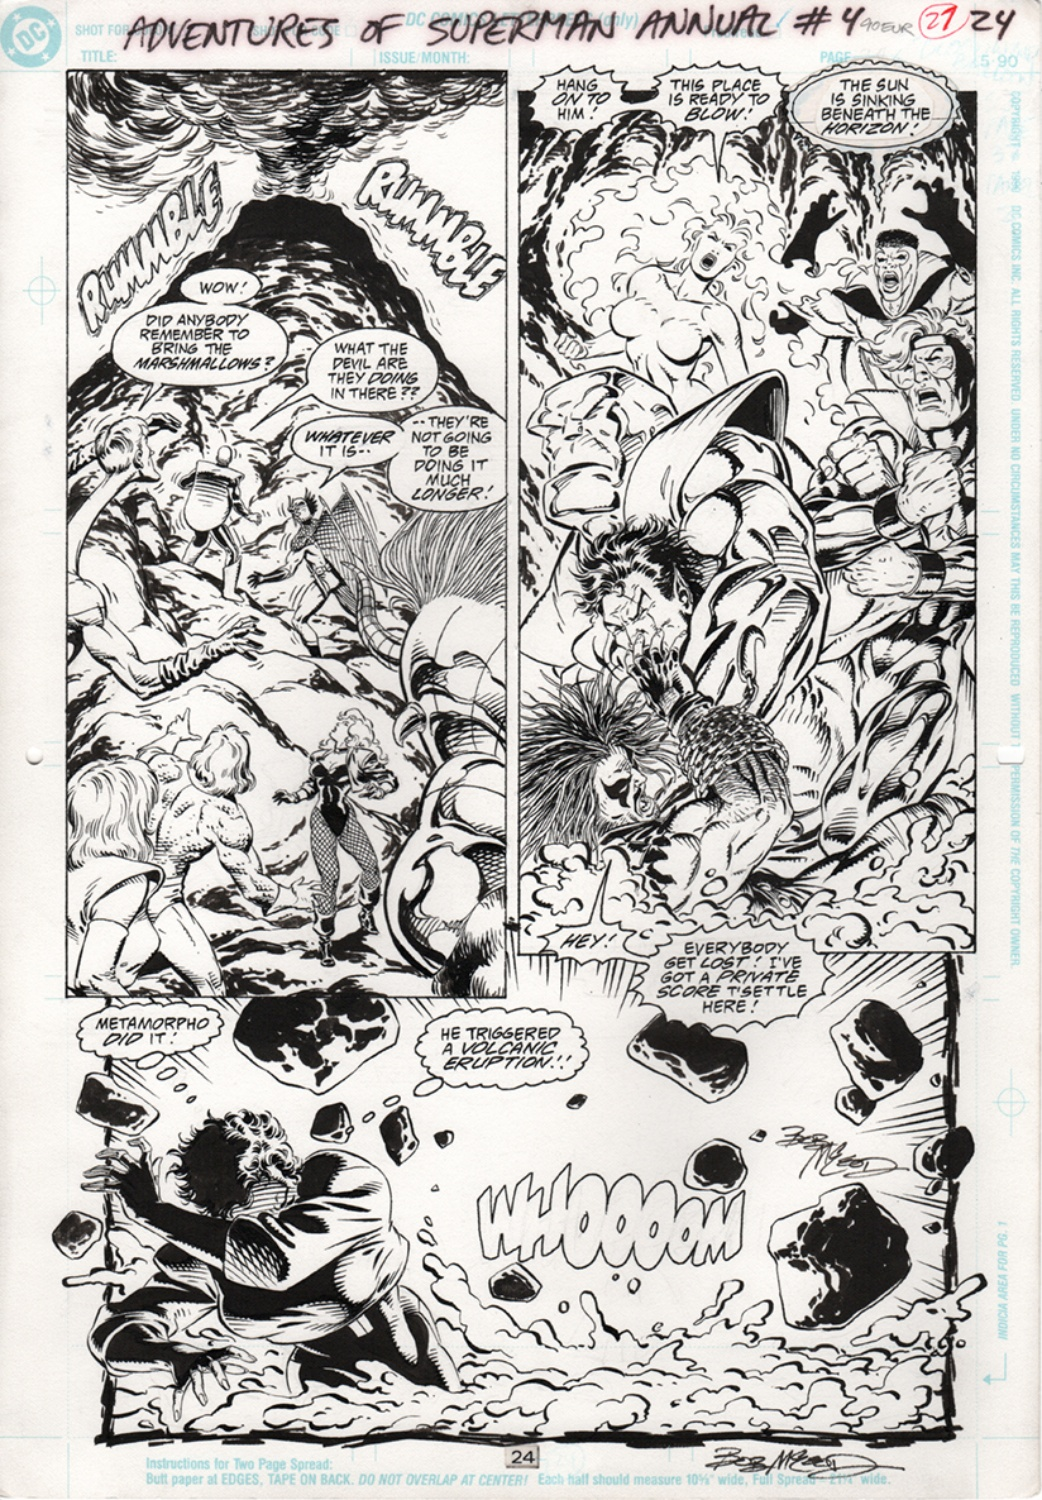 Adventures of Superman - Annual 4 pg24